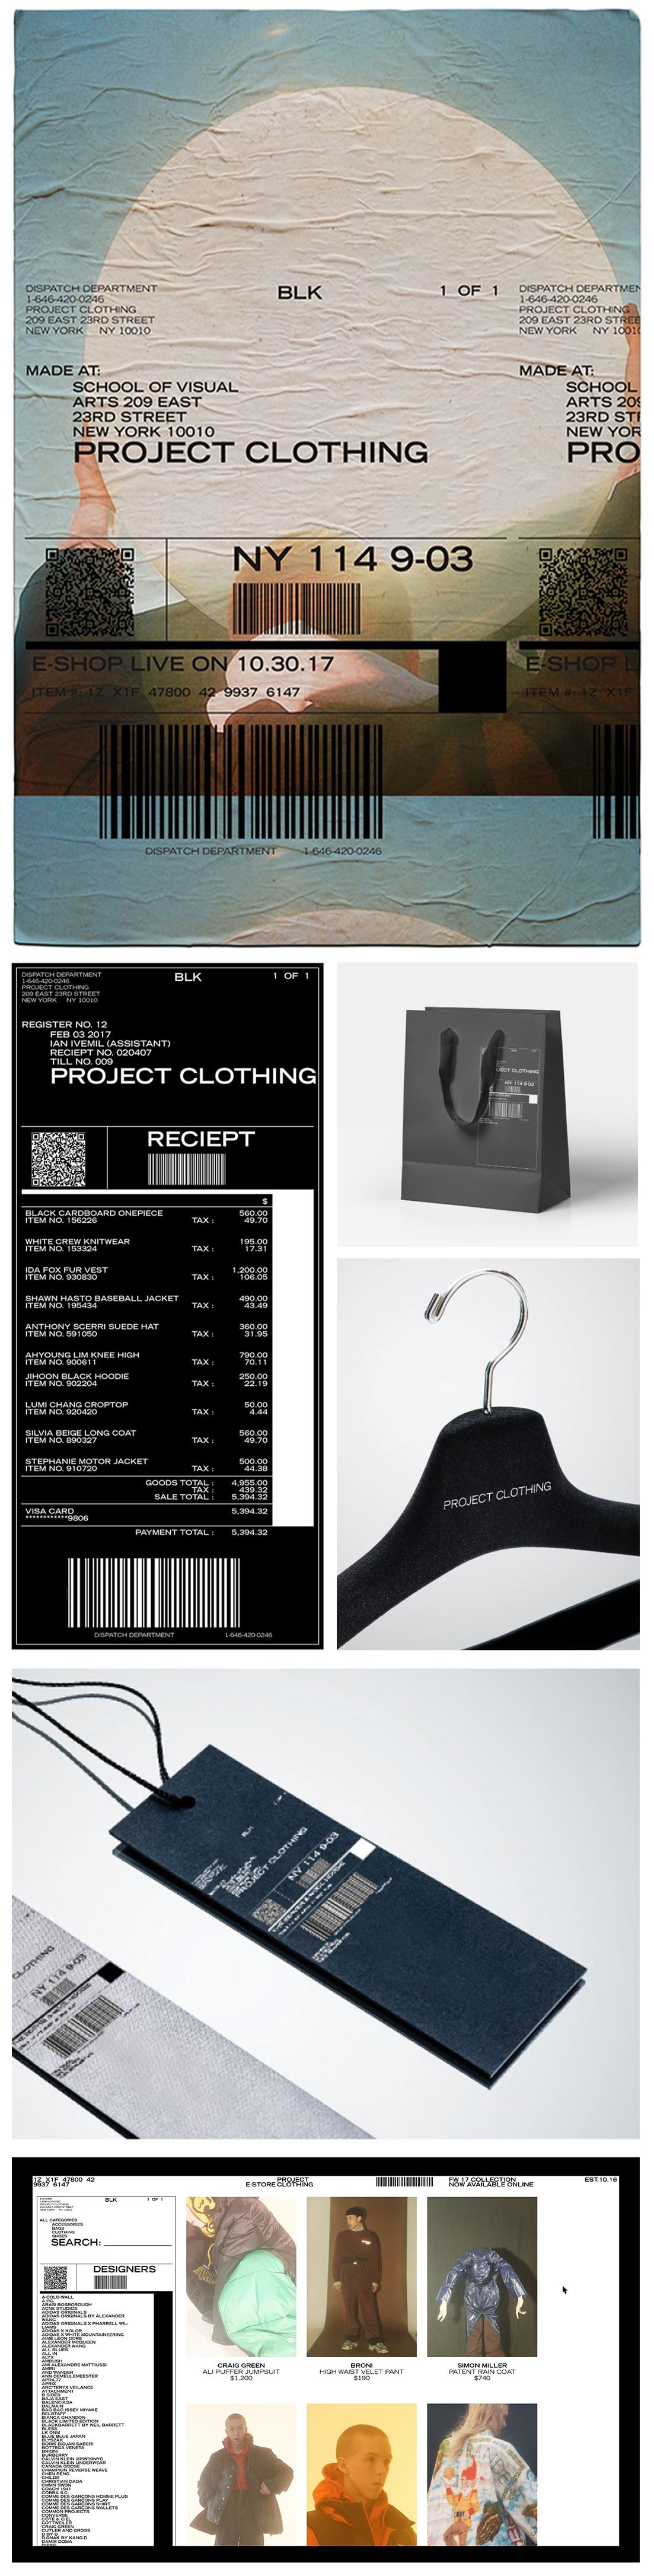 Project Clothing